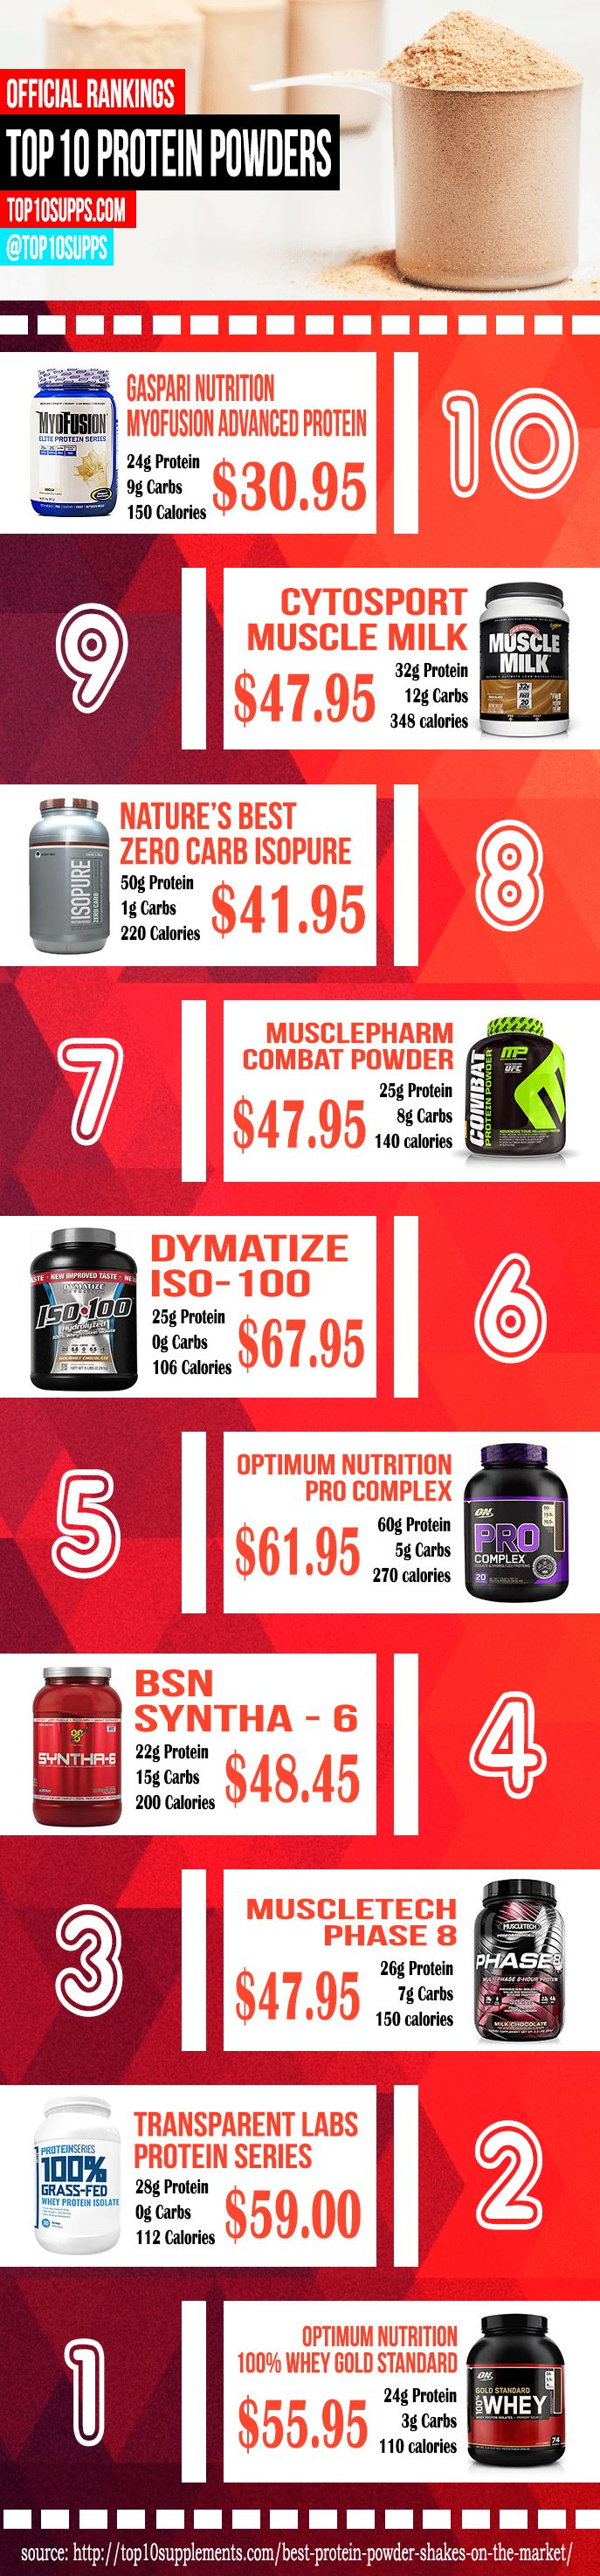 The Best Protein Powders Infographic